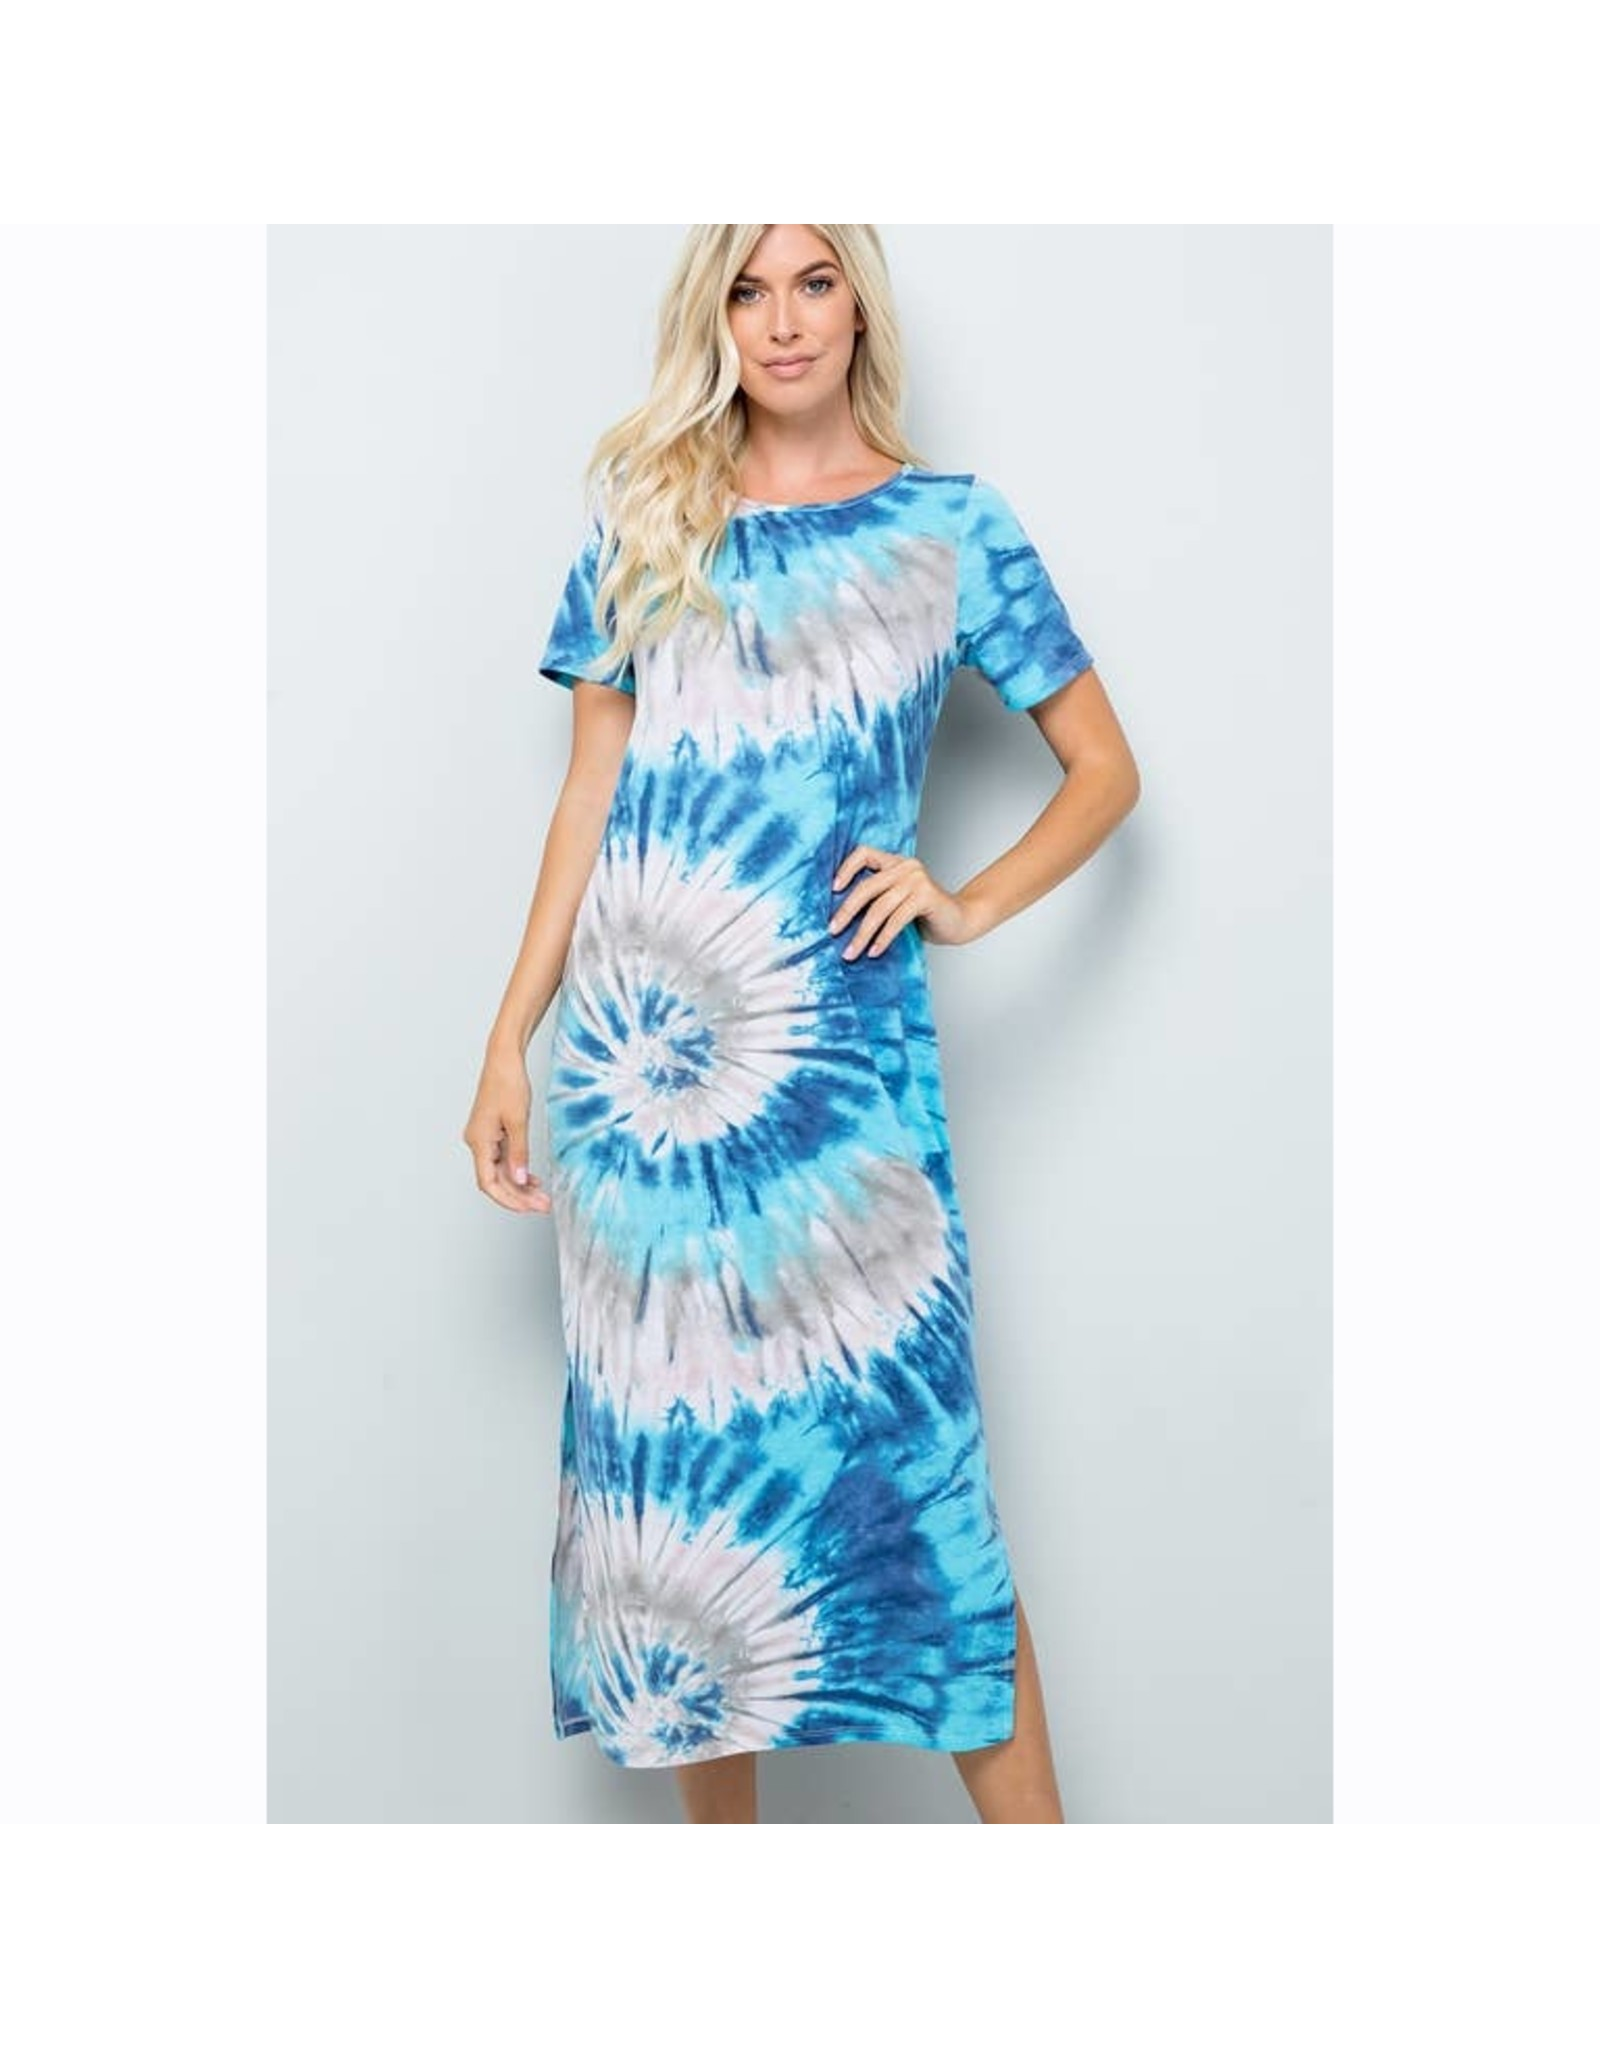 Sweet Lovely by Jen Tie Dye Dress